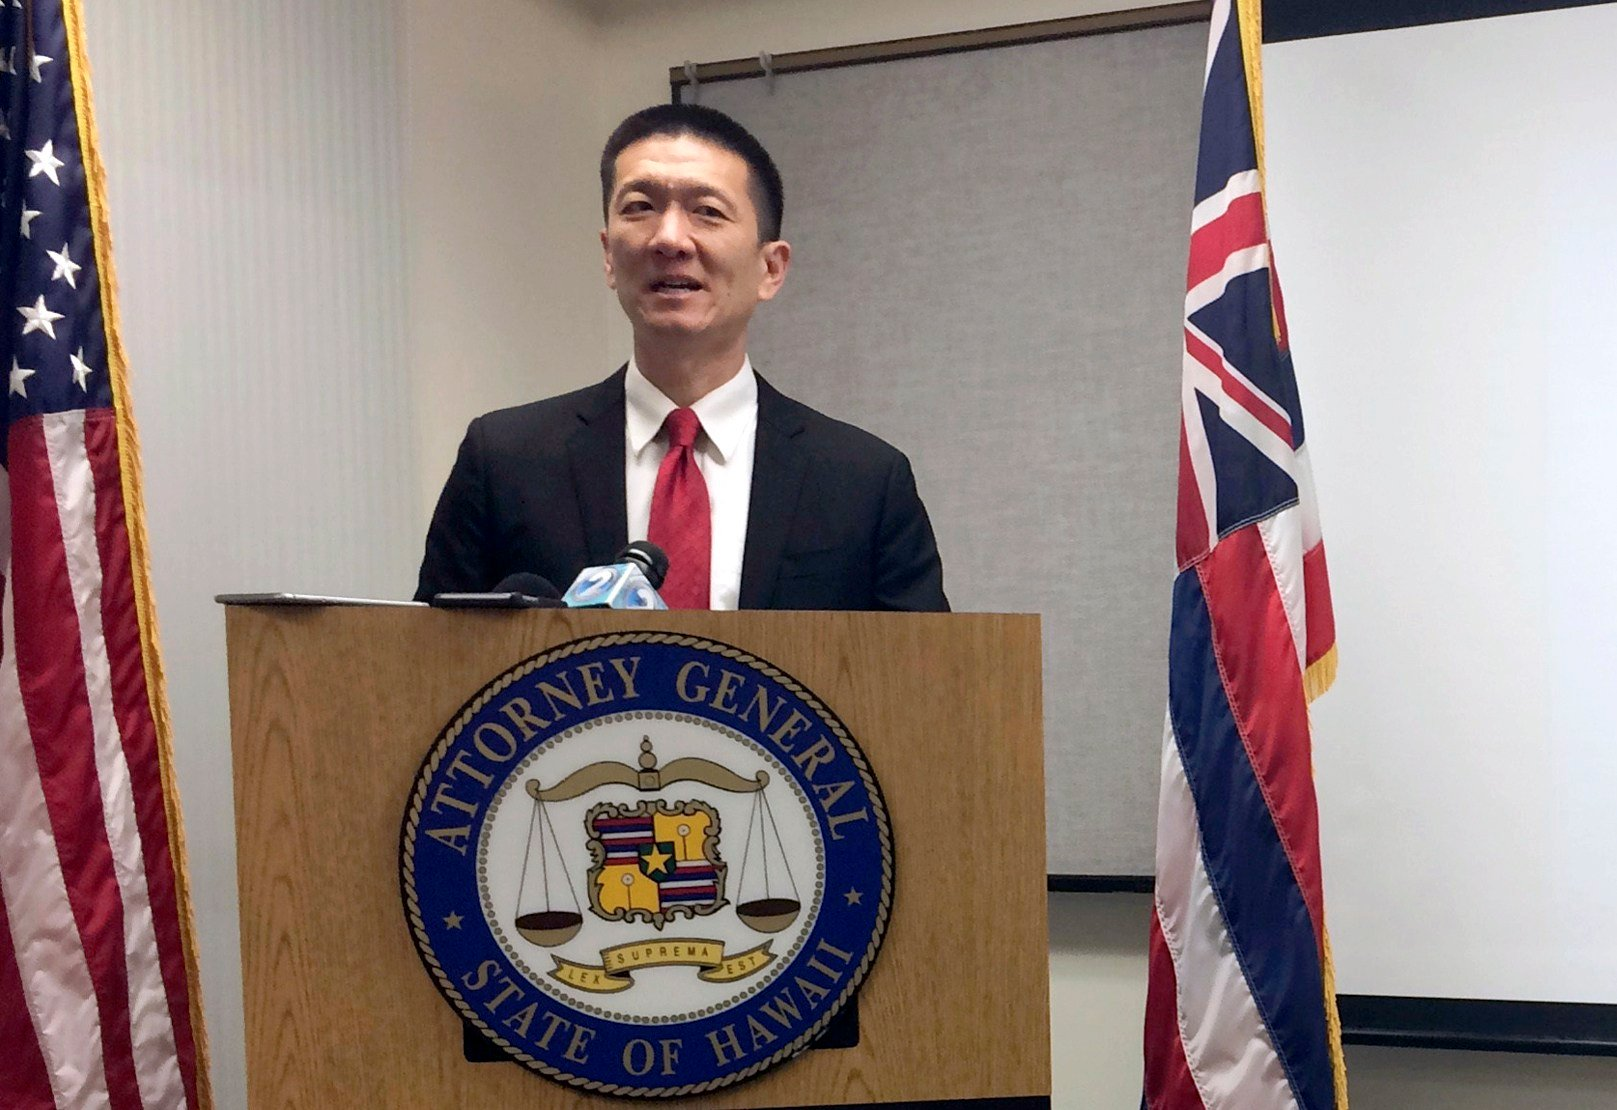 FILE - In this Feb. 3, 2017, file photo, Hawaii Attorney General Doug Chin speaks at a news conference in Honolulu announcing the state of Hawaii has filed a lawsuit challenging President Donald Trump's travel ban. (AP Photo/Audrey McAvoy, File)